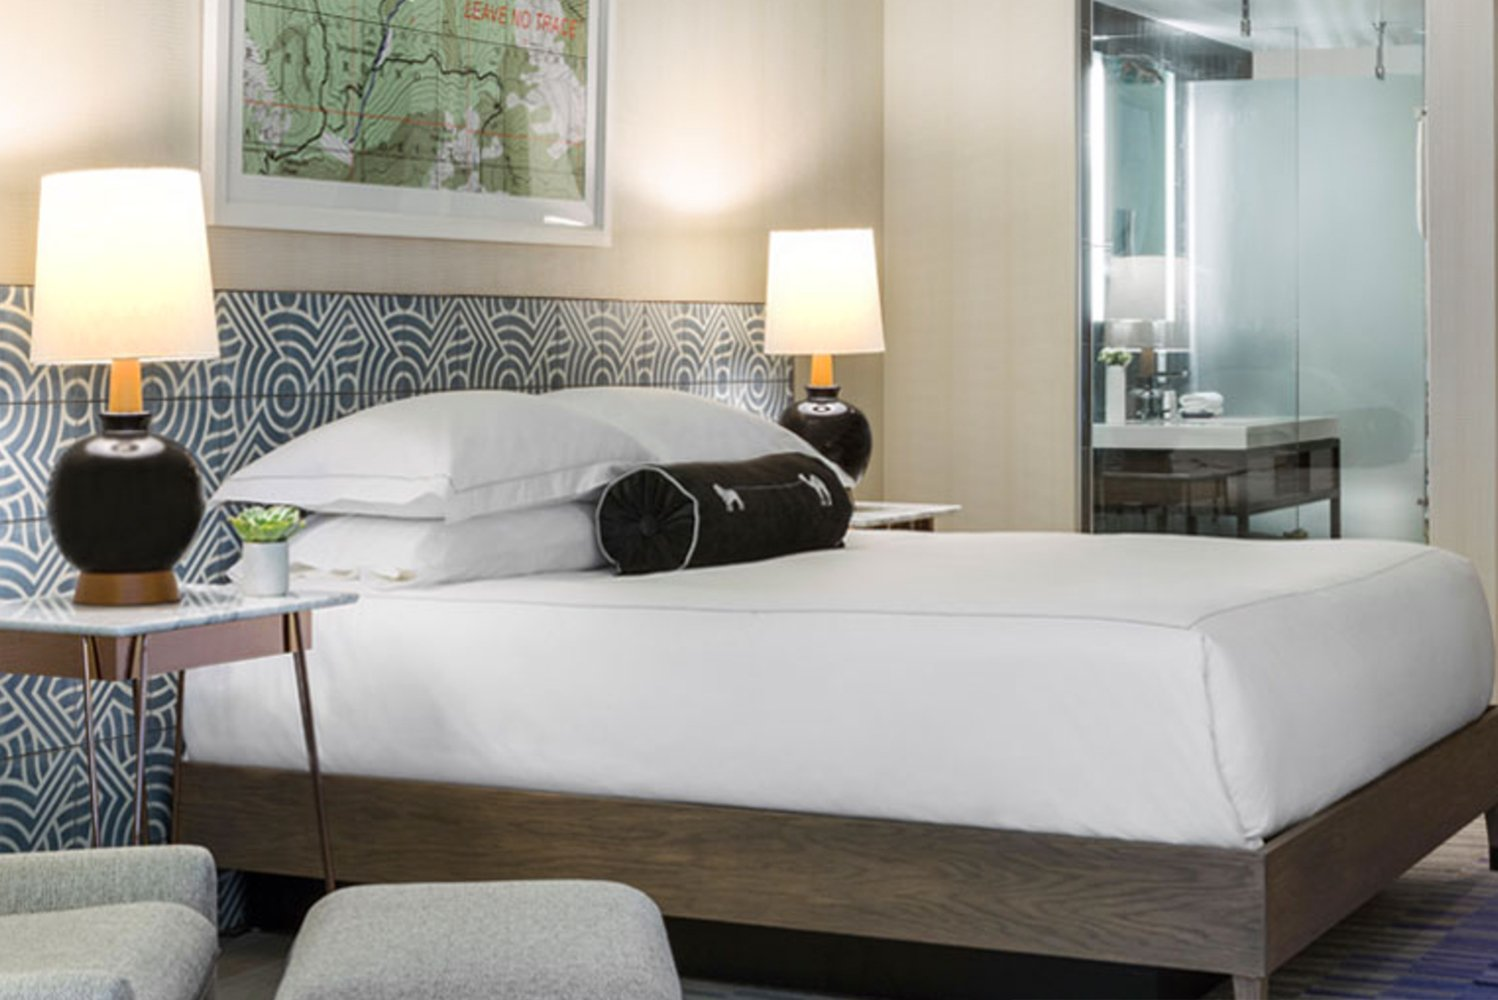 Design-wise, Kimpton The Rowan Palm Springs draws inspiration from the resurgence of the Midcentury Modern movement.